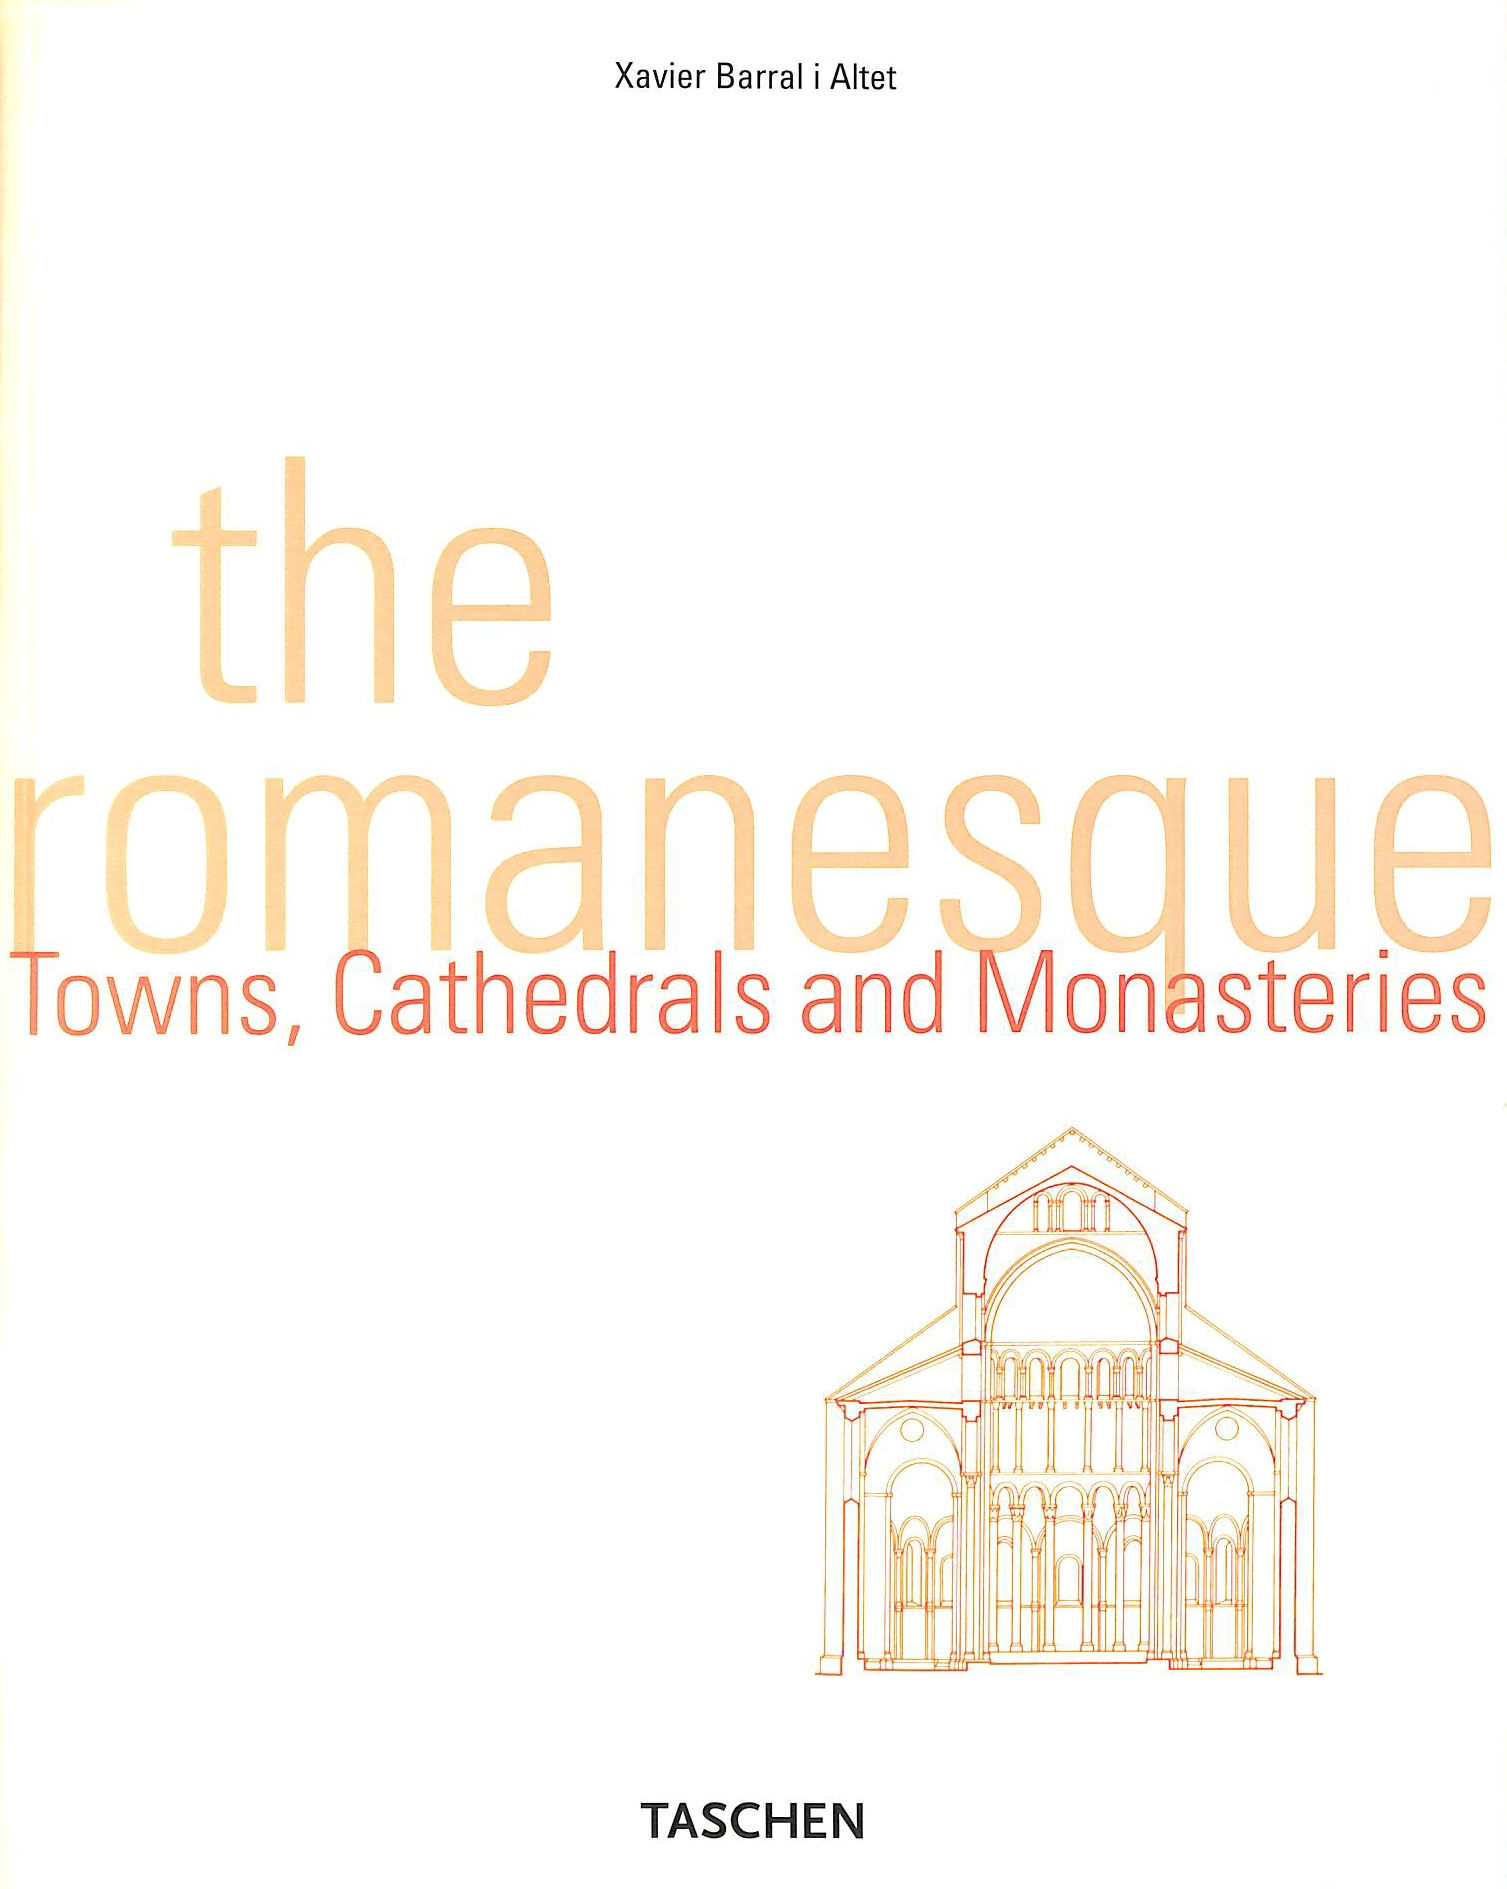 Image for The Romanesque: Cathedrales, Monasteries and Cities